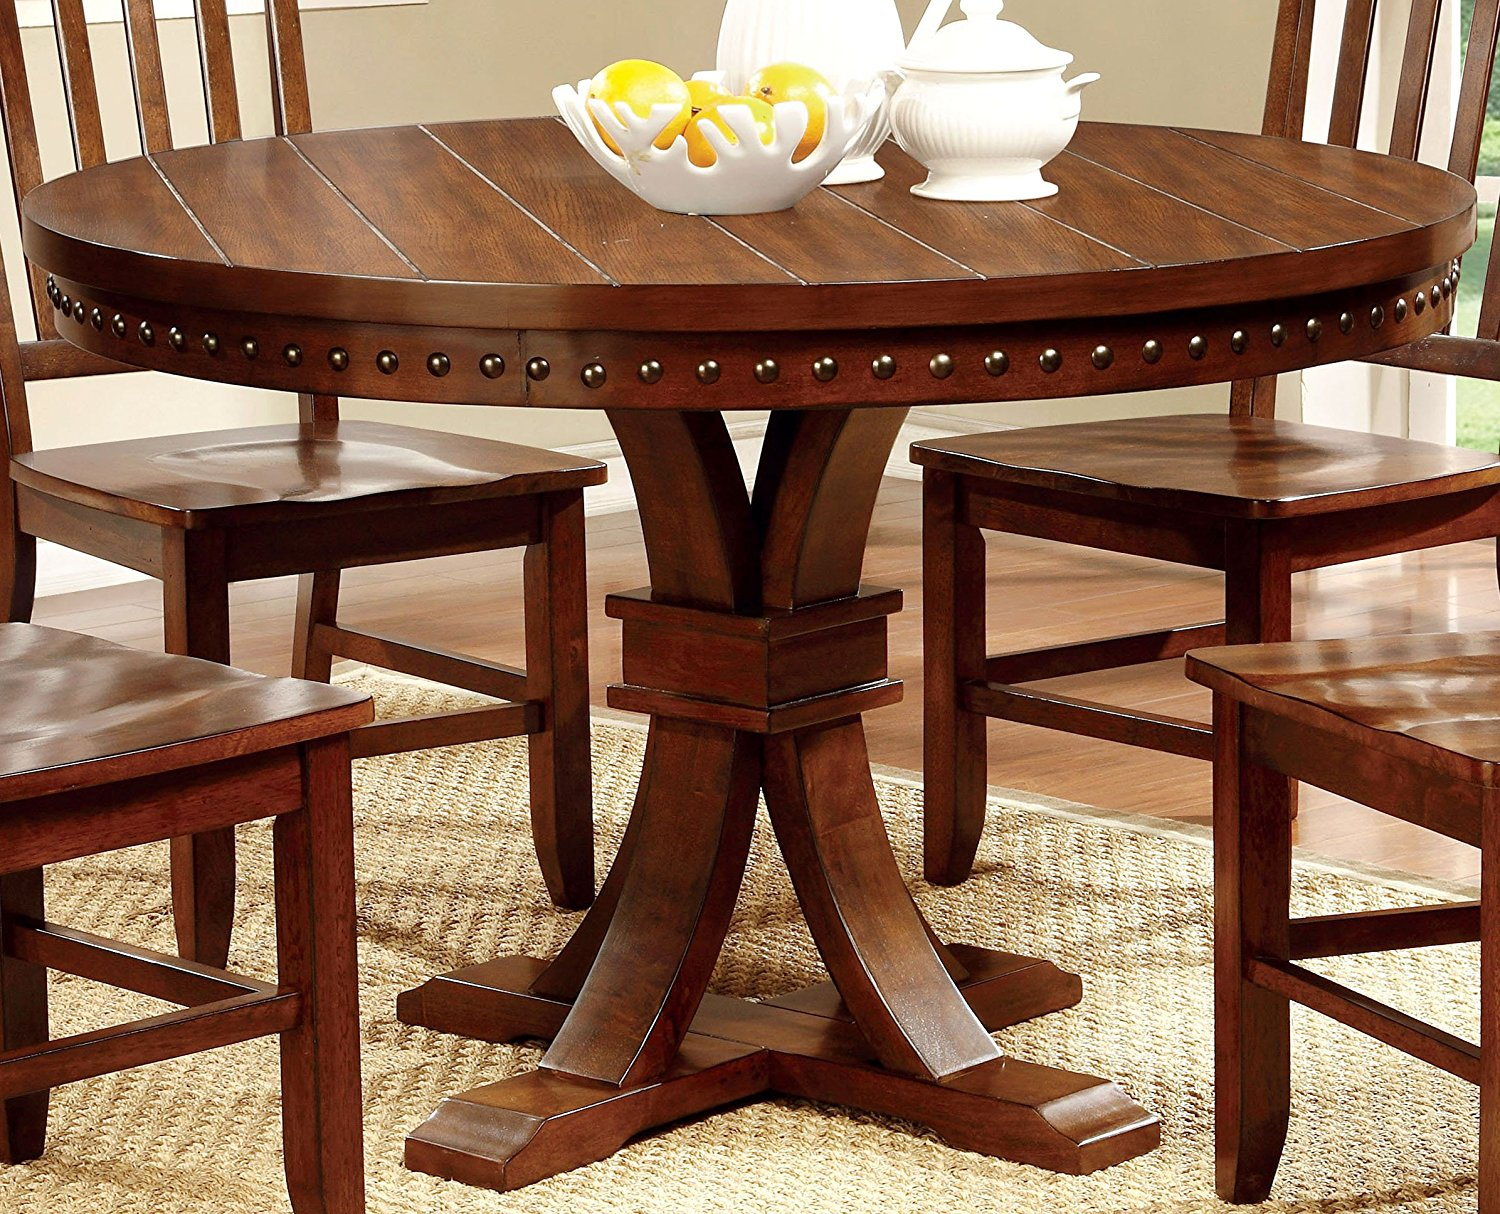 Furniture of America Castile Transitional Round Dining Table, Dark Oak